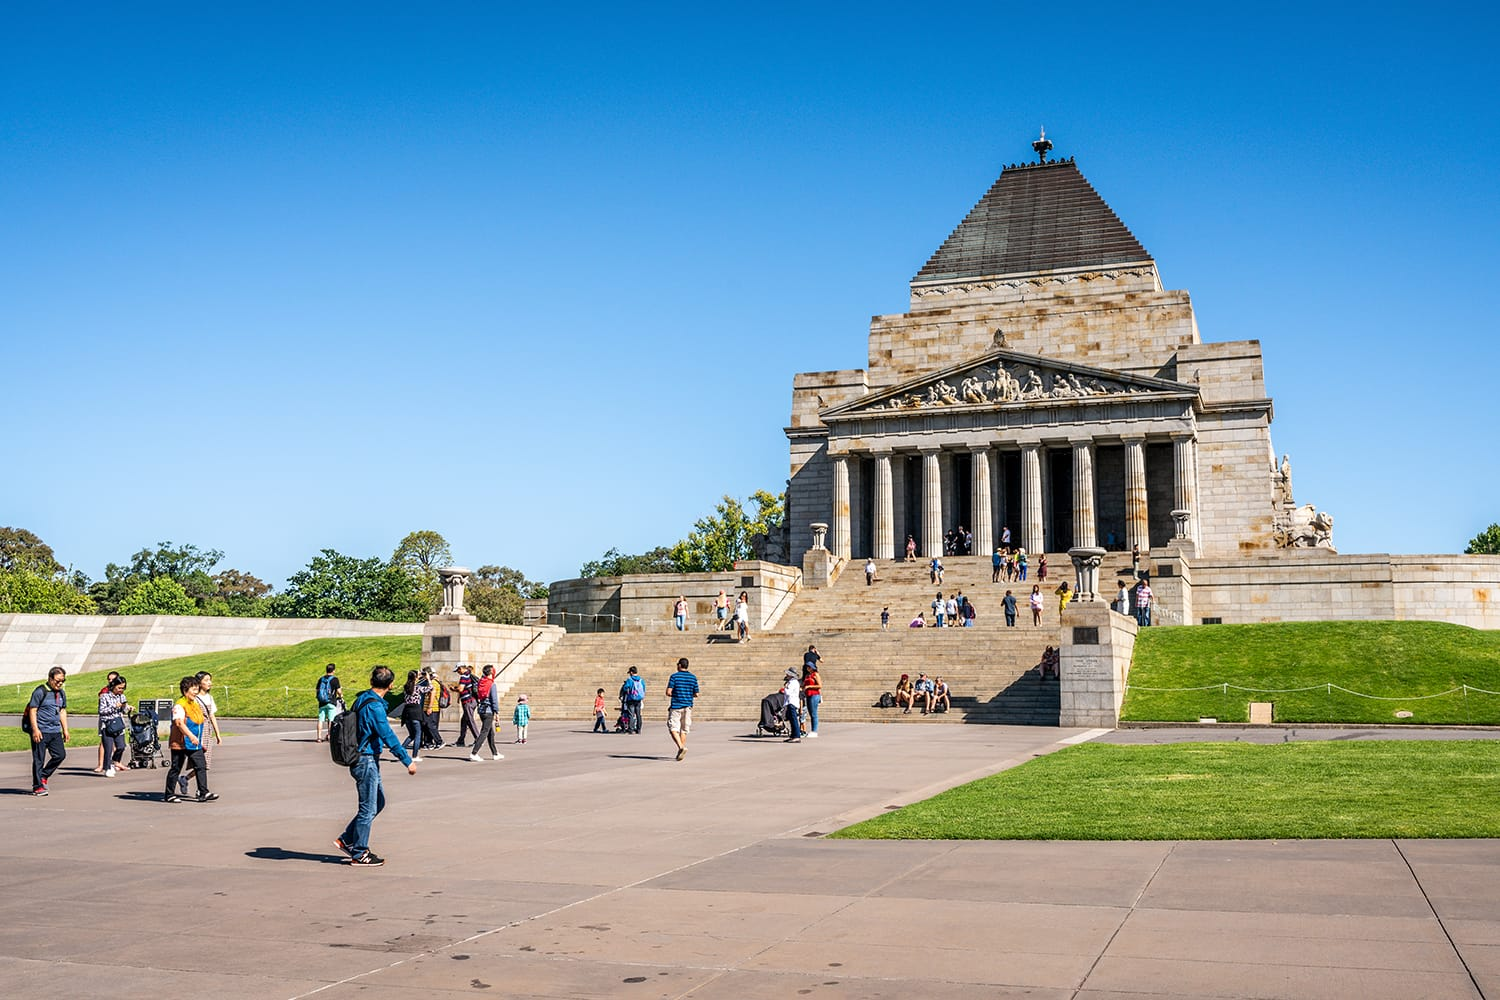 View of the Shrine of Remembrance with people and tourists in Melbourne Victoria Australia